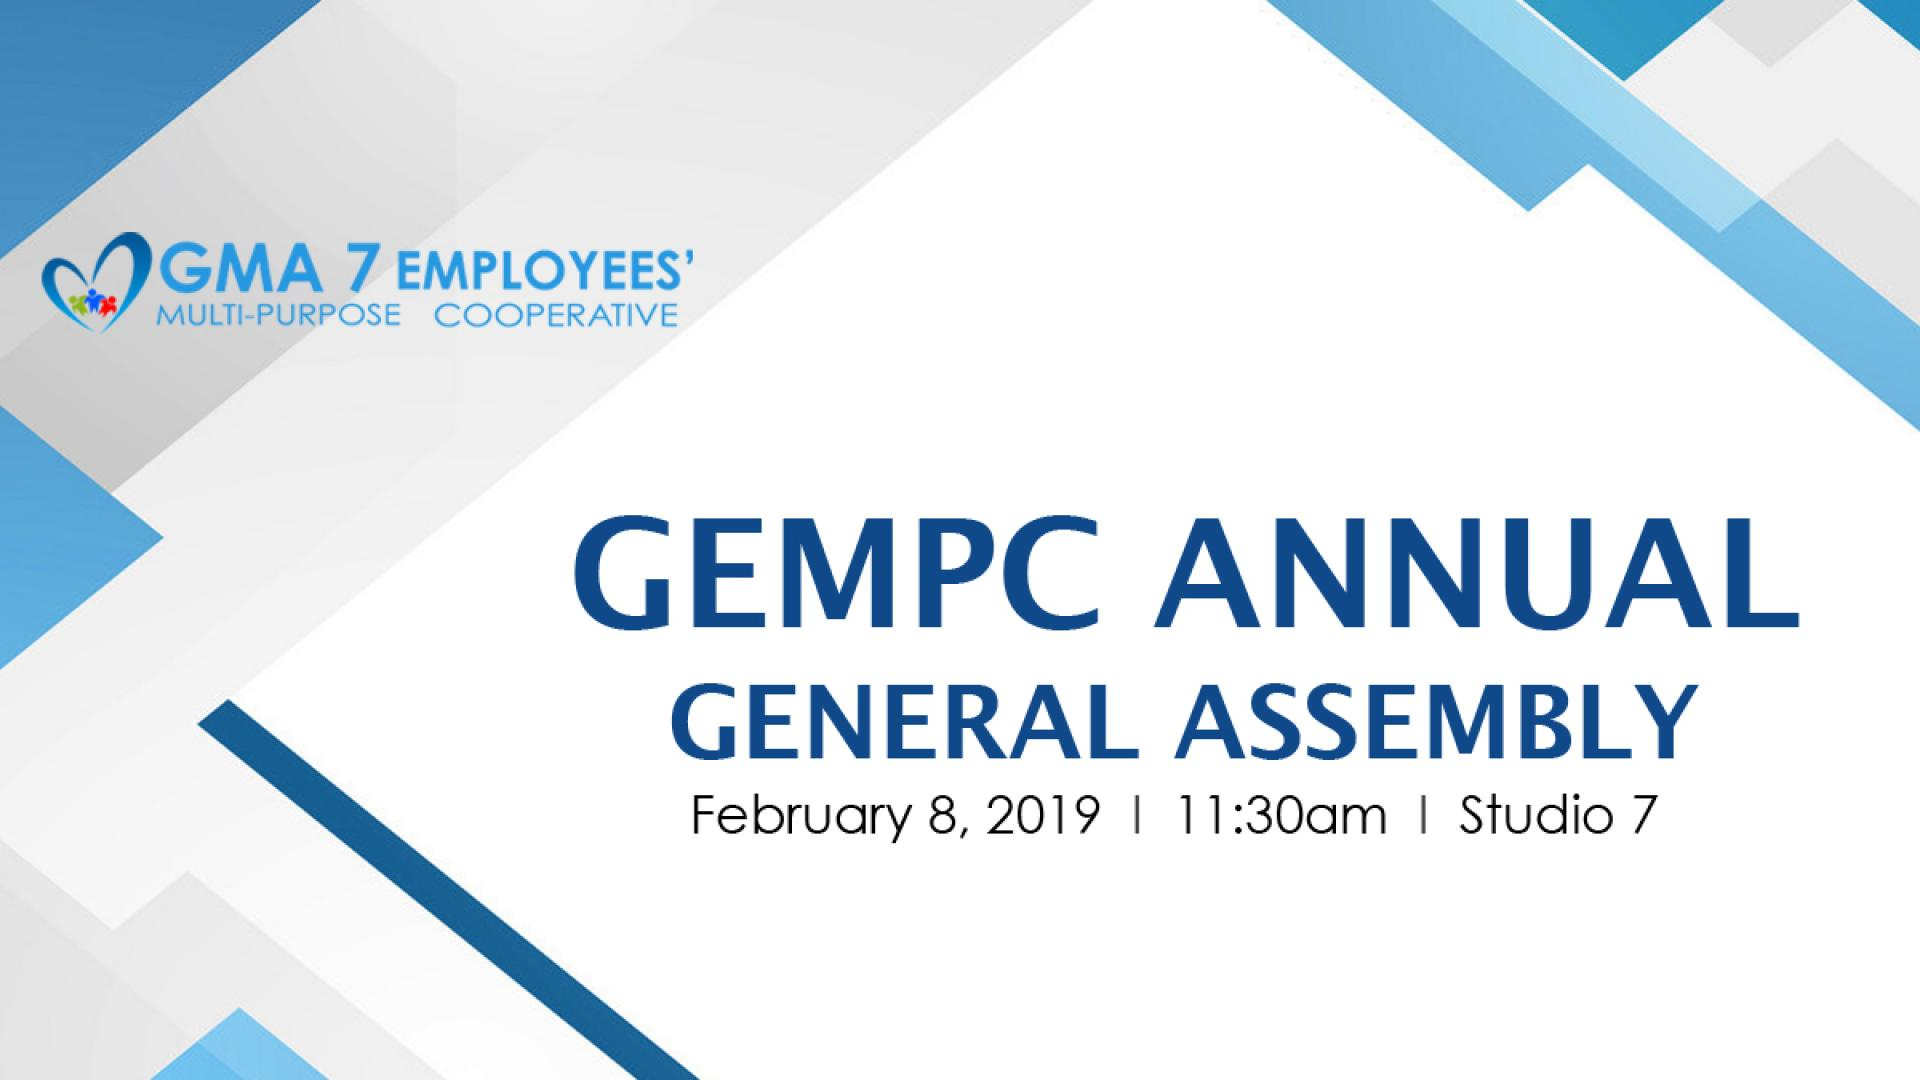 http://gma7empc.coop/about-us/12/gempc-acbl-and-policies/2019-general-assembly-meeting